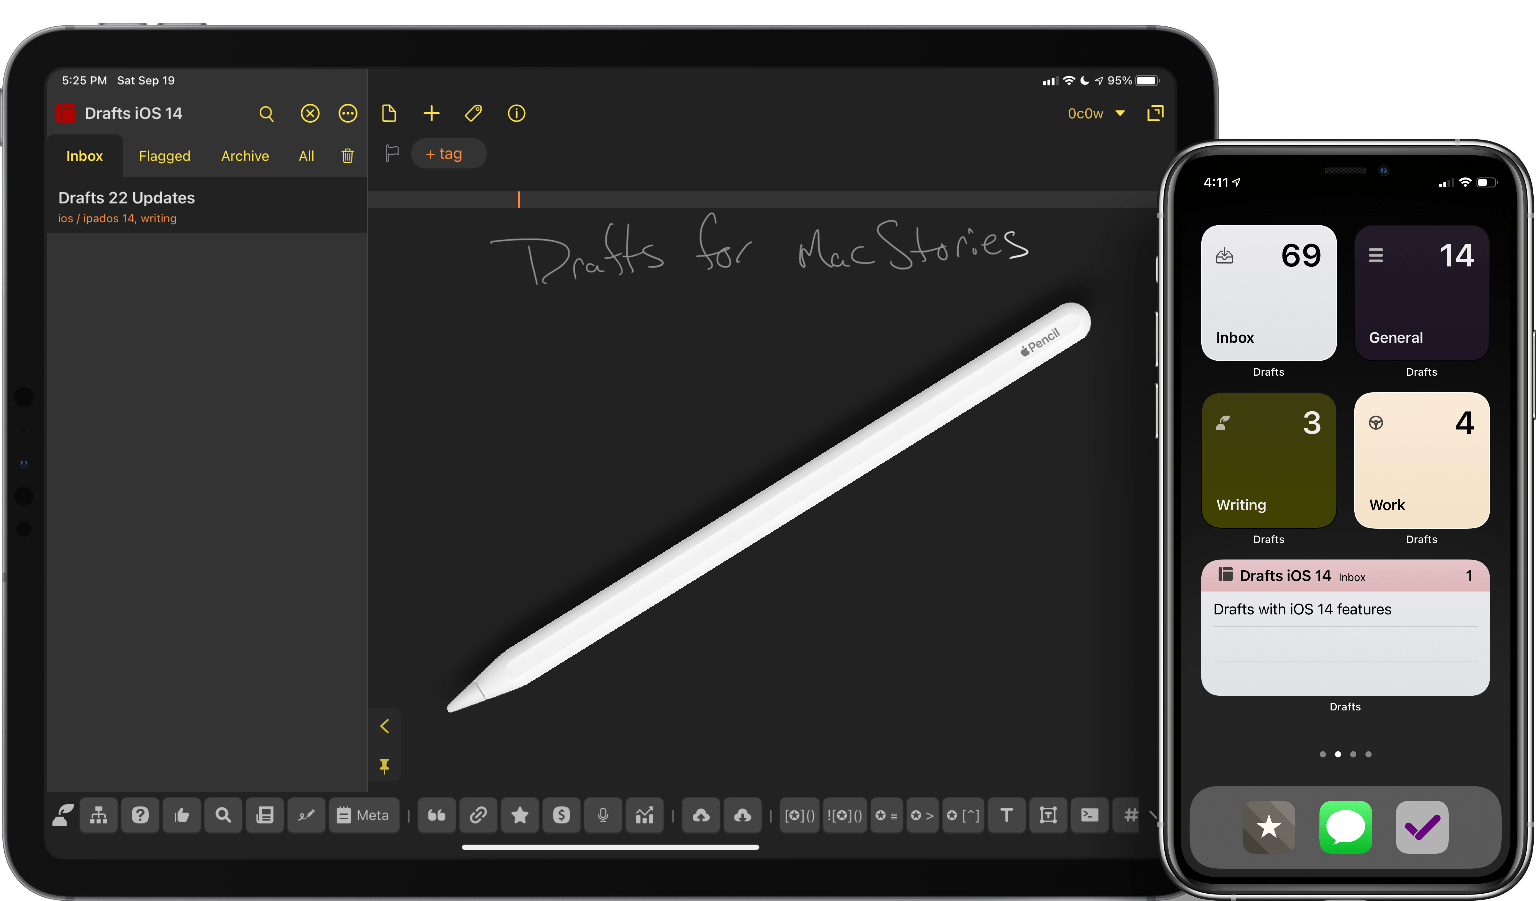 Drafts 22 Review: Widgets, Scribble, and More